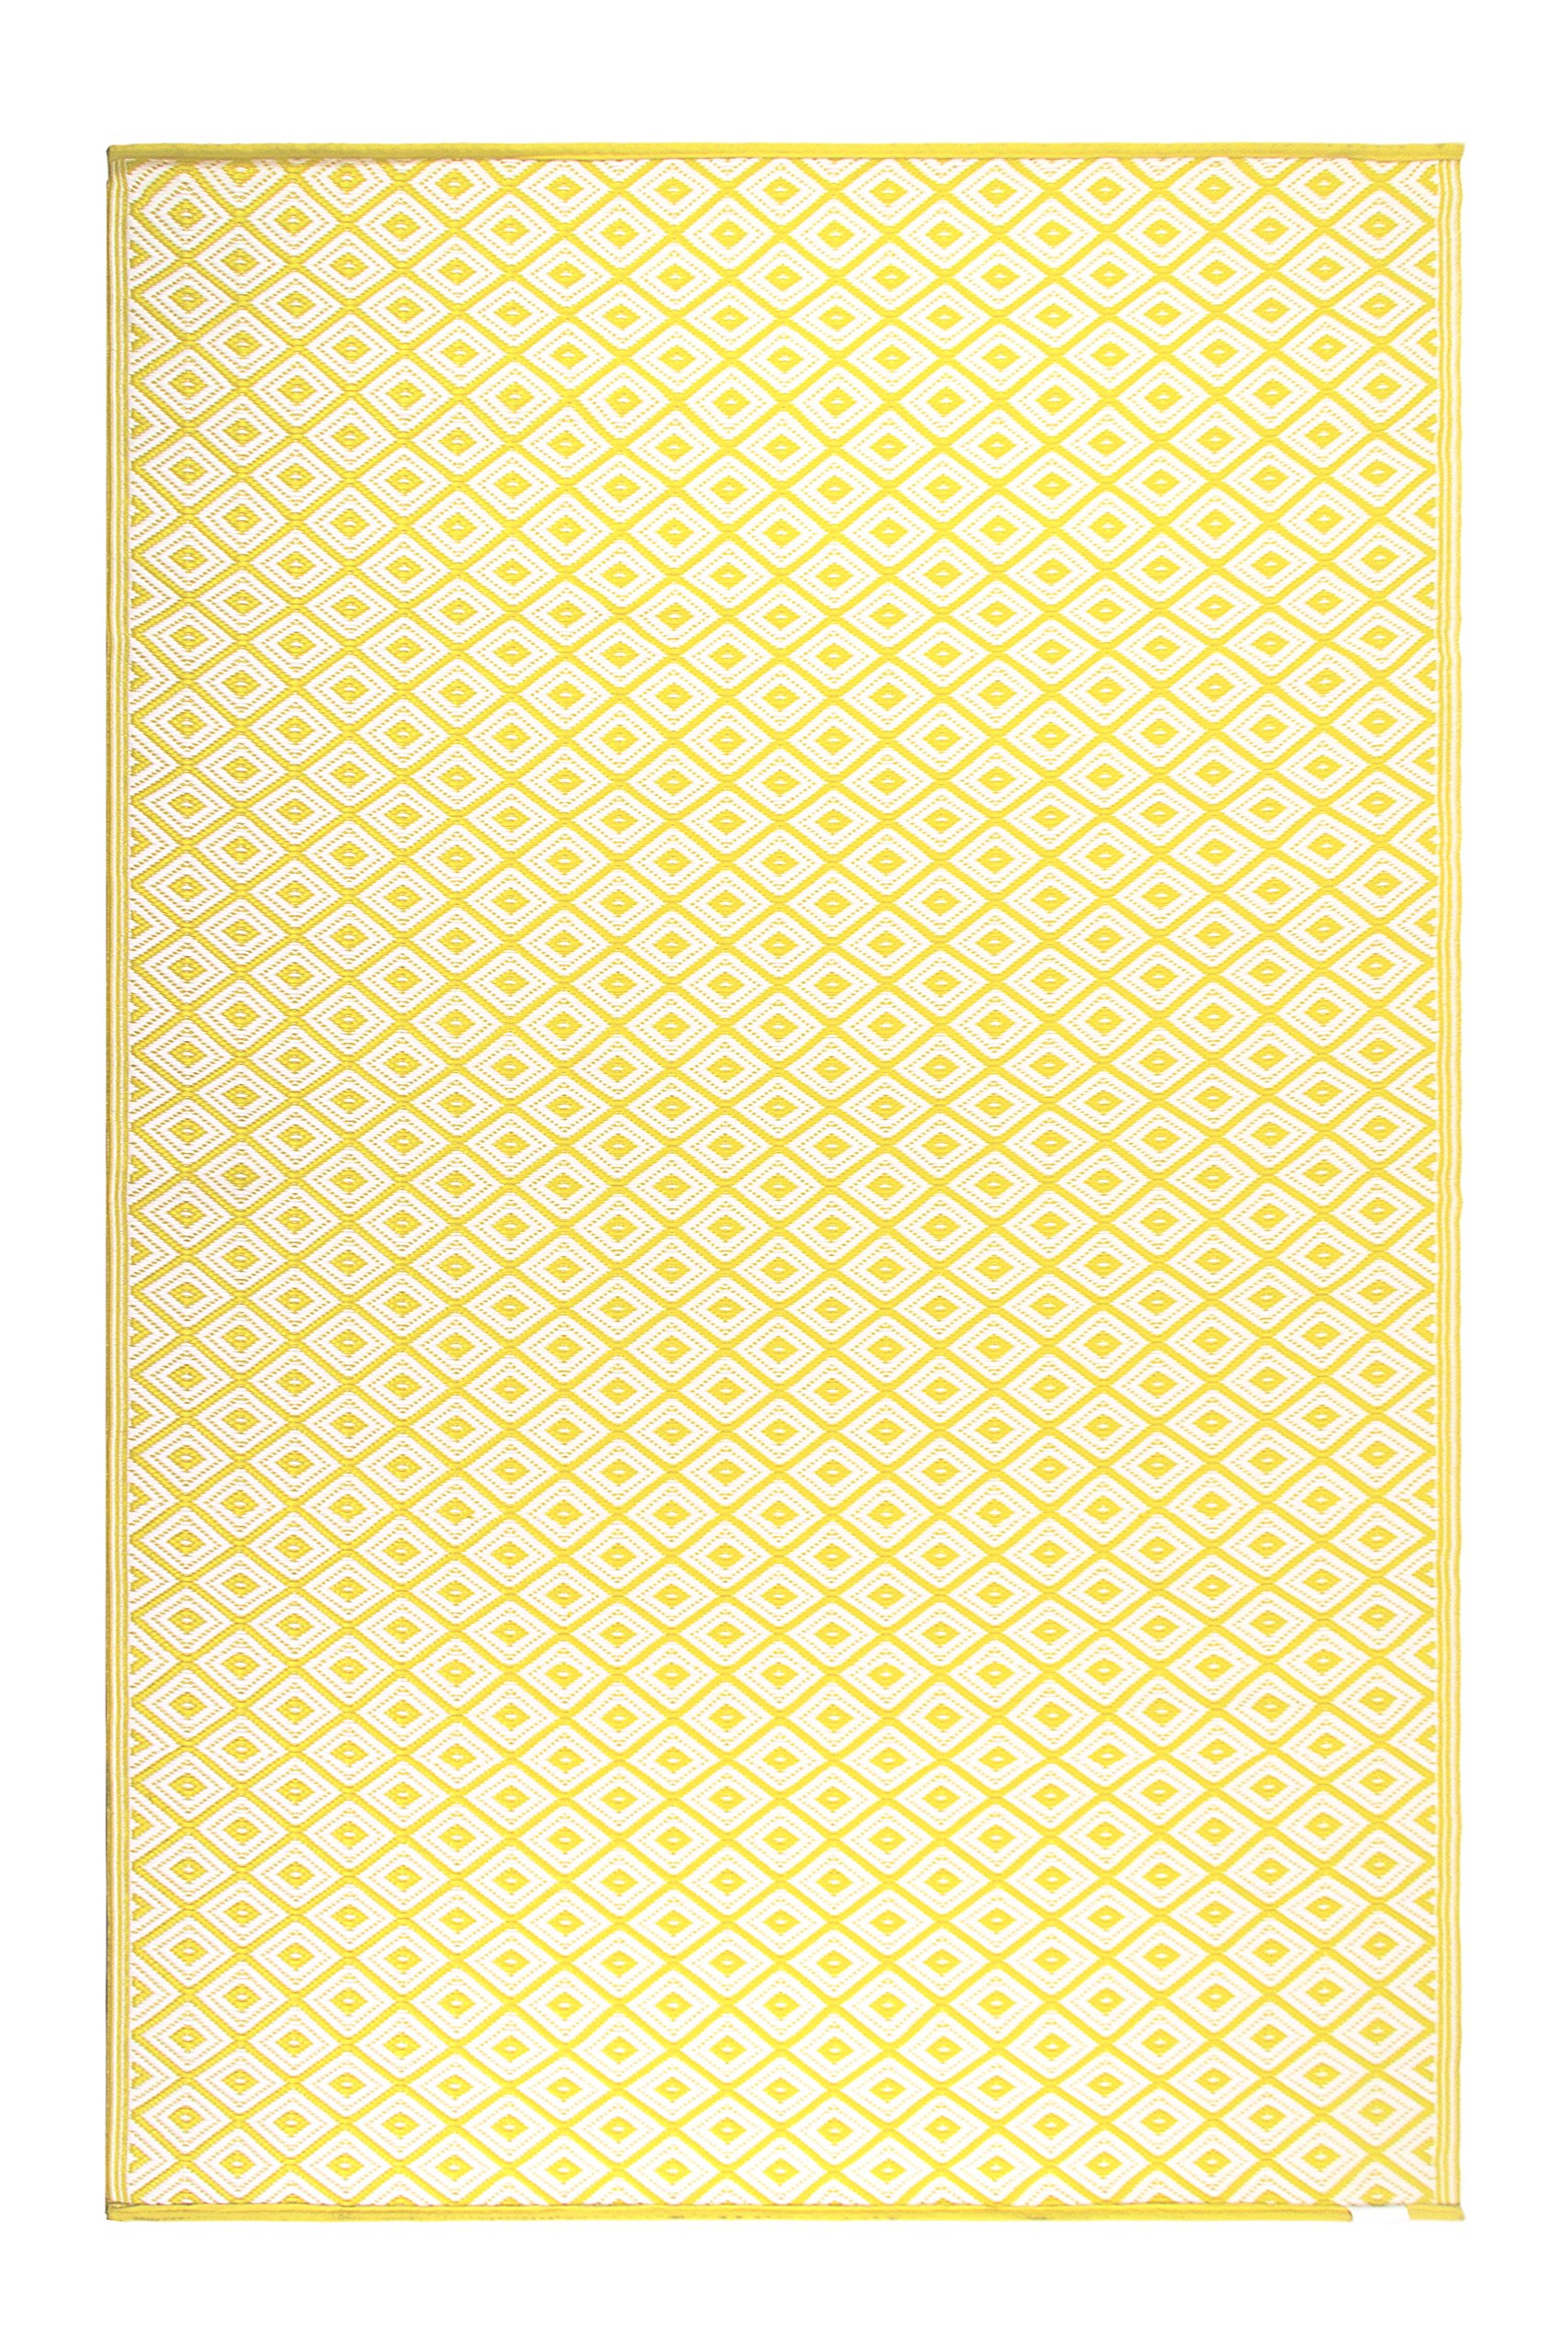 FH Home Indoor/Outdoor Recycled Plastic Floor Mat/Rug - Reversible - Weather & UV Resistant - GM16 - Yellow (5 ft x 8 ft) by FH Home (Image #3)